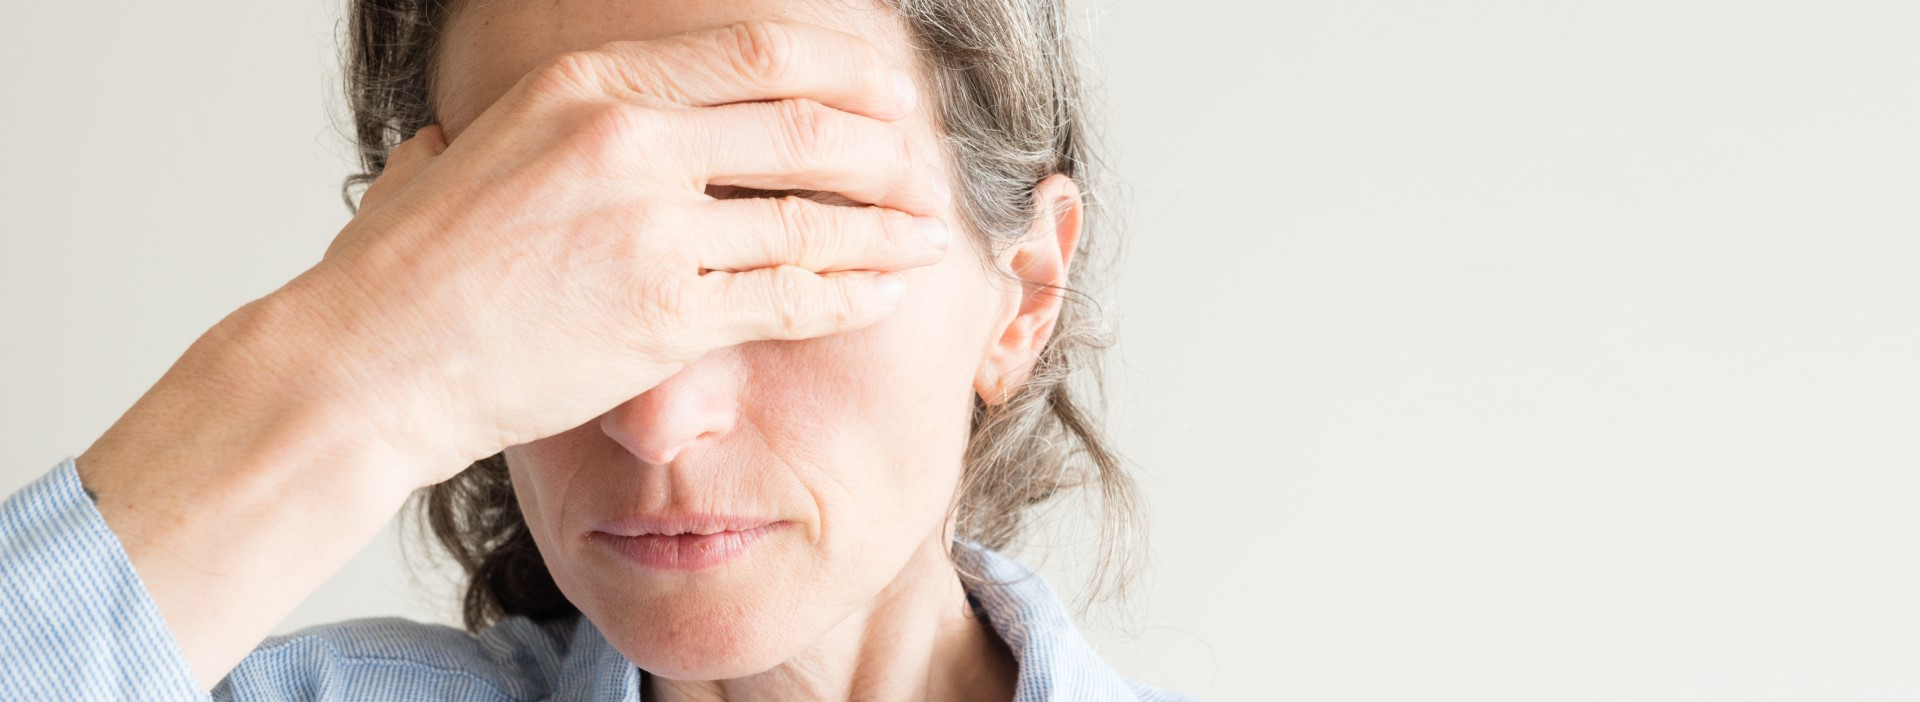 woman-with-hand-on-forehead-with-chronic-pain-raleigh-cary-nc